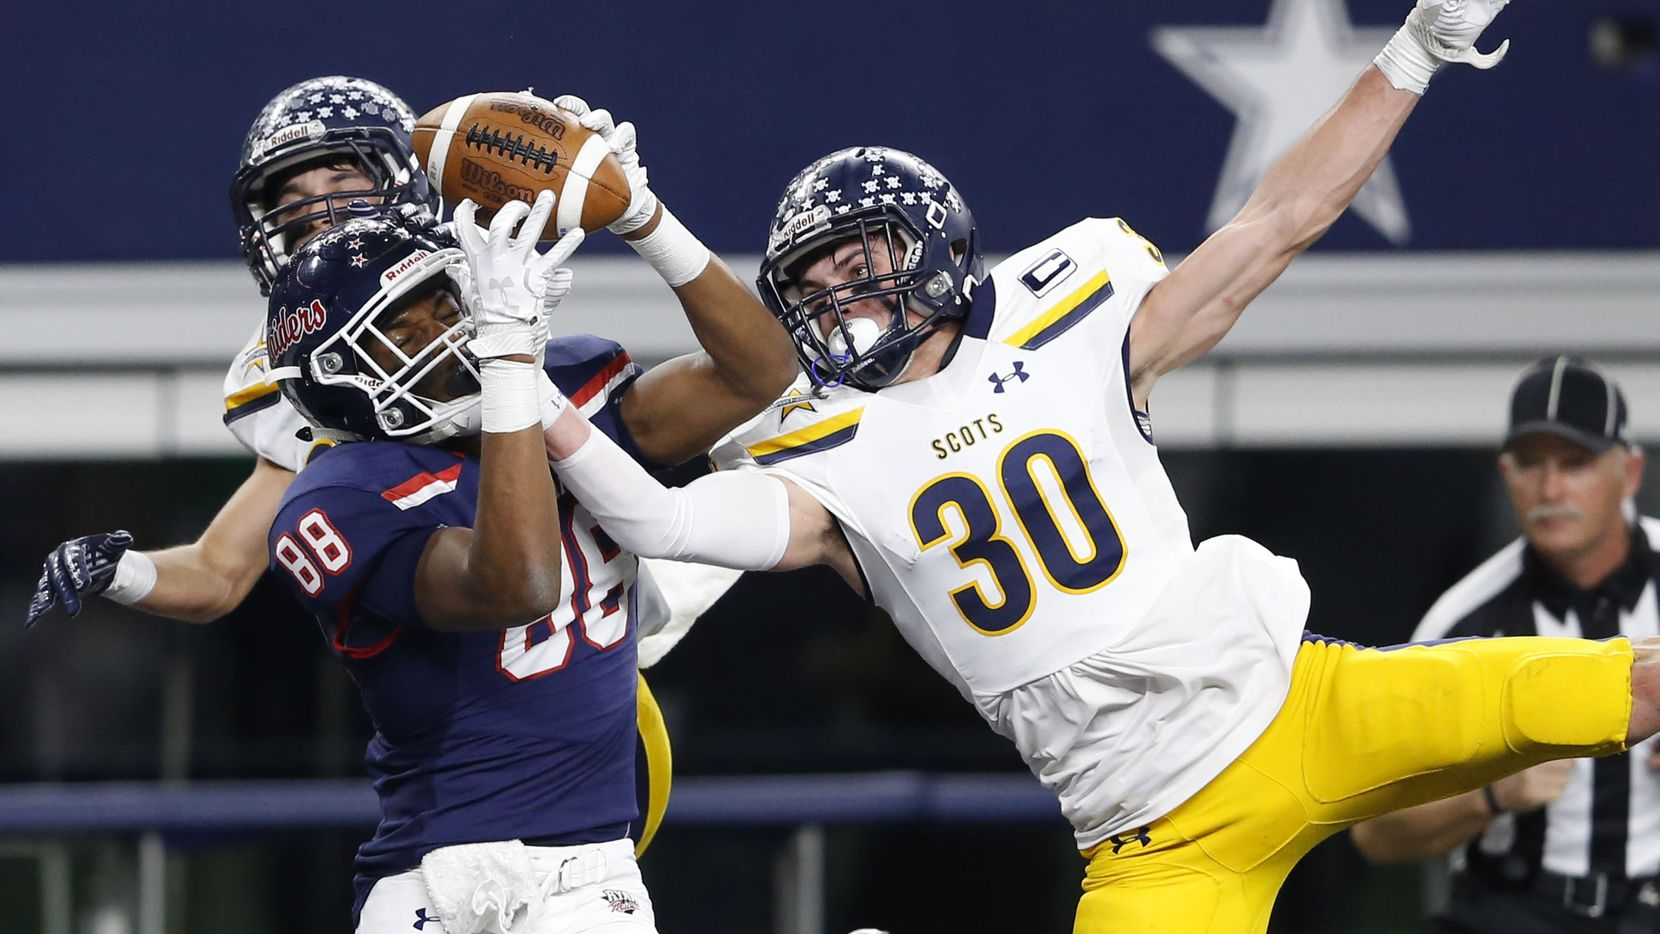 Denton Ryan's Chritauskie Dove (88) catches a pass for a touchdown despite the effort from Highland Park's James Herring (30) on defense during the first half of play in a Class 5A Division I state semifinal at AT&T Stadium in Arlington, on Friday, December 15, 2017.